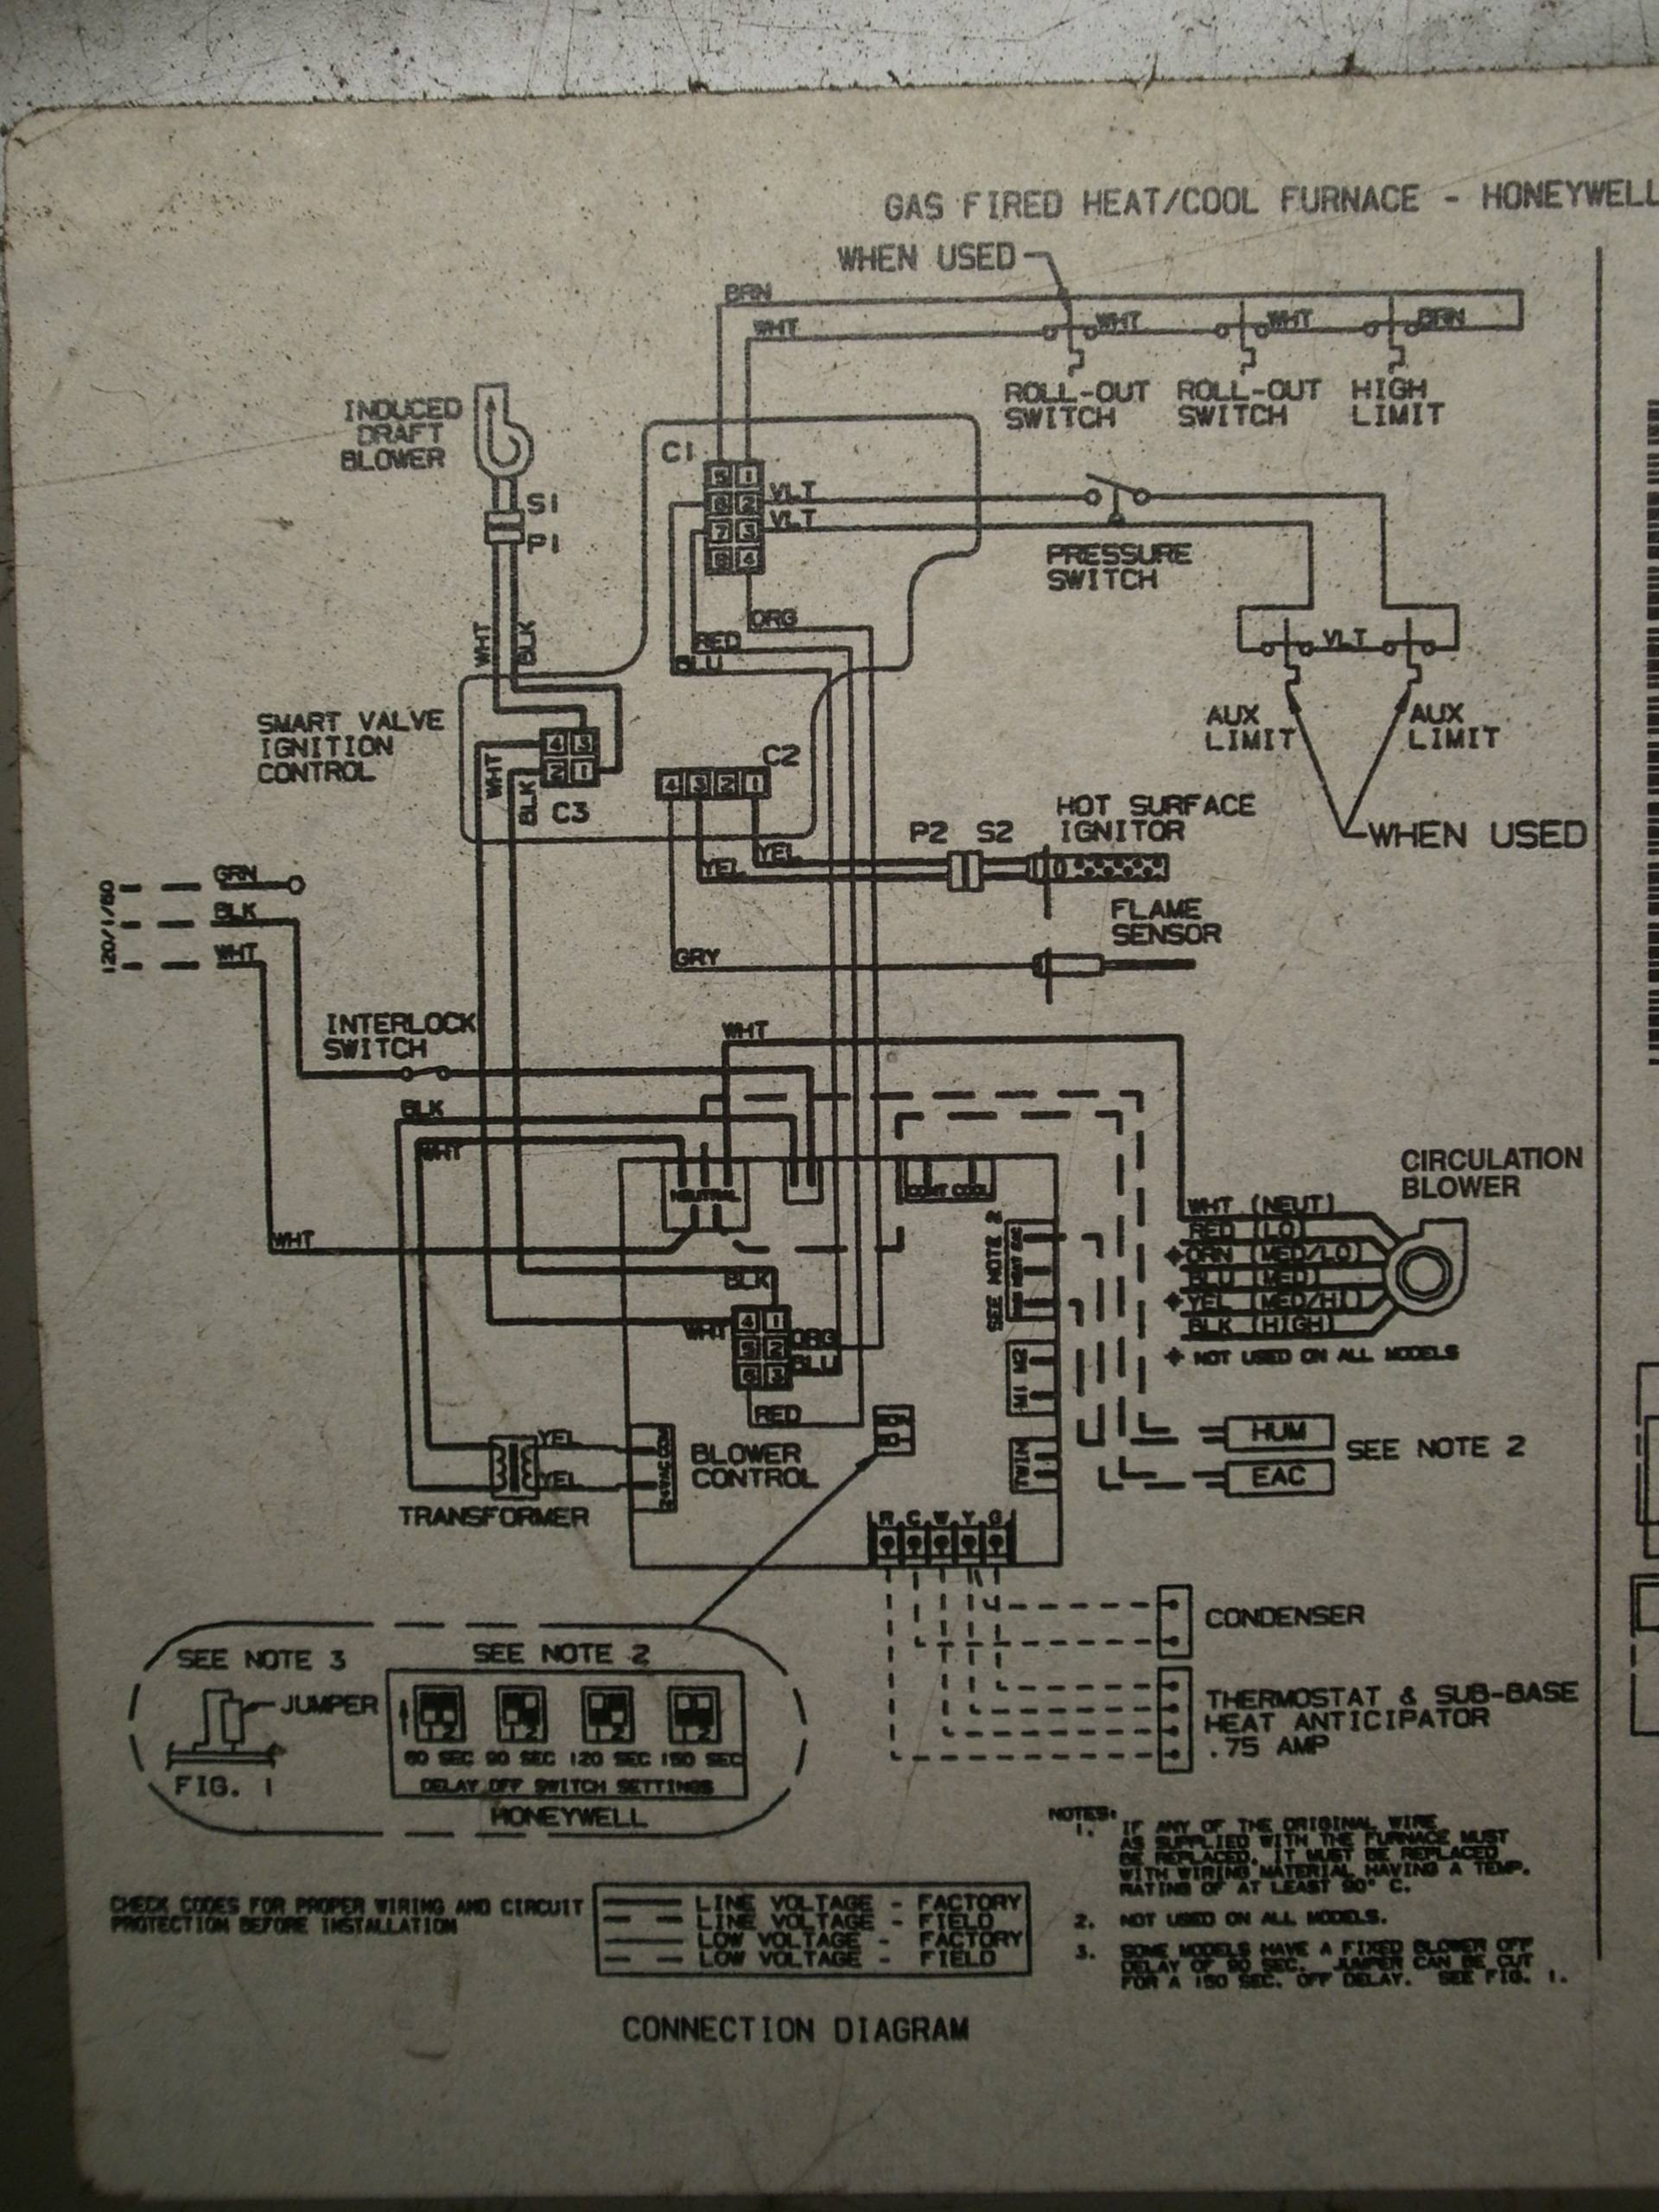 Wiring Diagram Trouble Matching Lennox Wiring To Honeywell